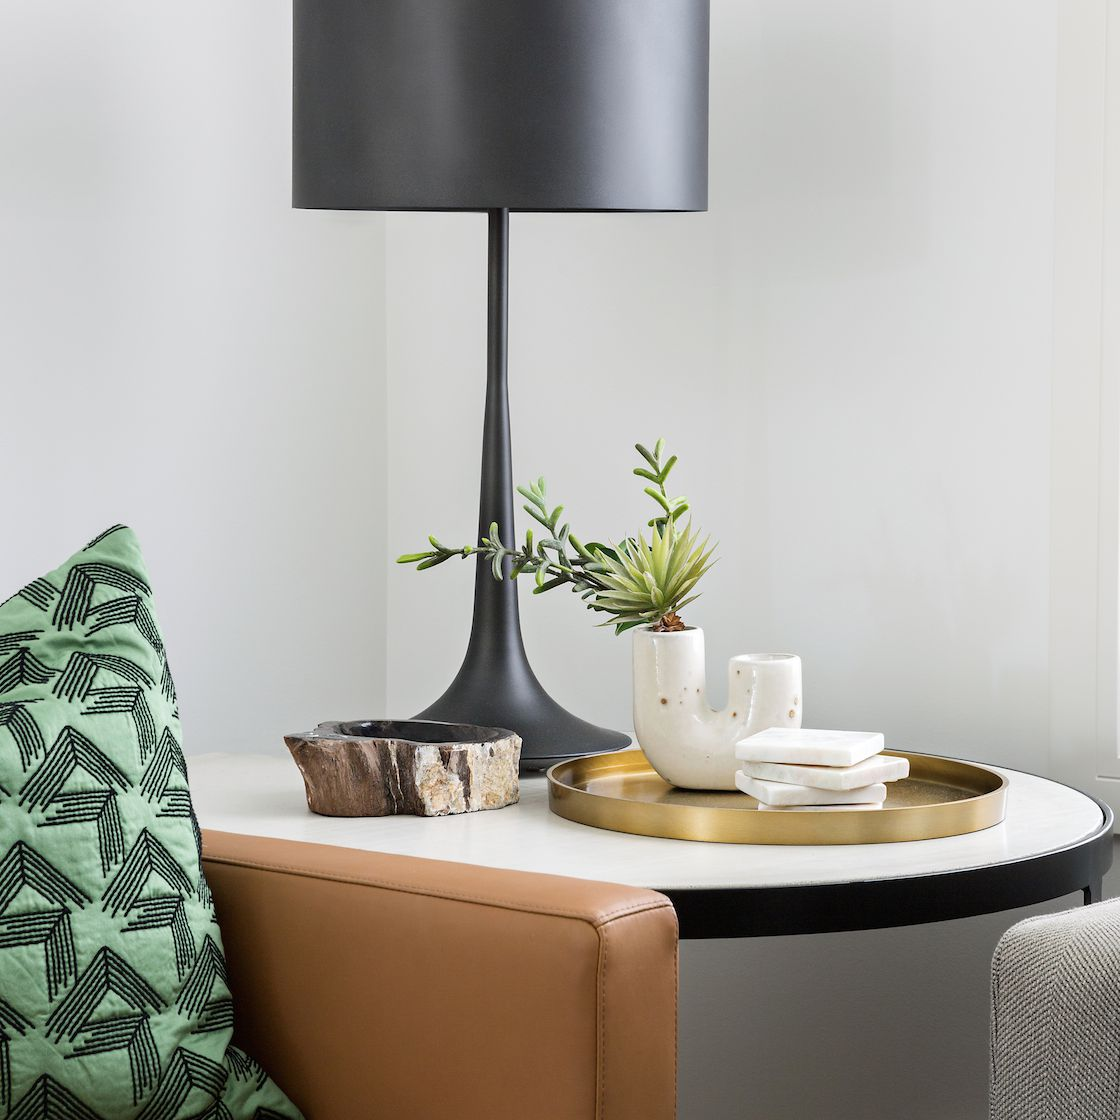 A side table topped with a sleek black lamp, a gold serving tray, and geometric white decor